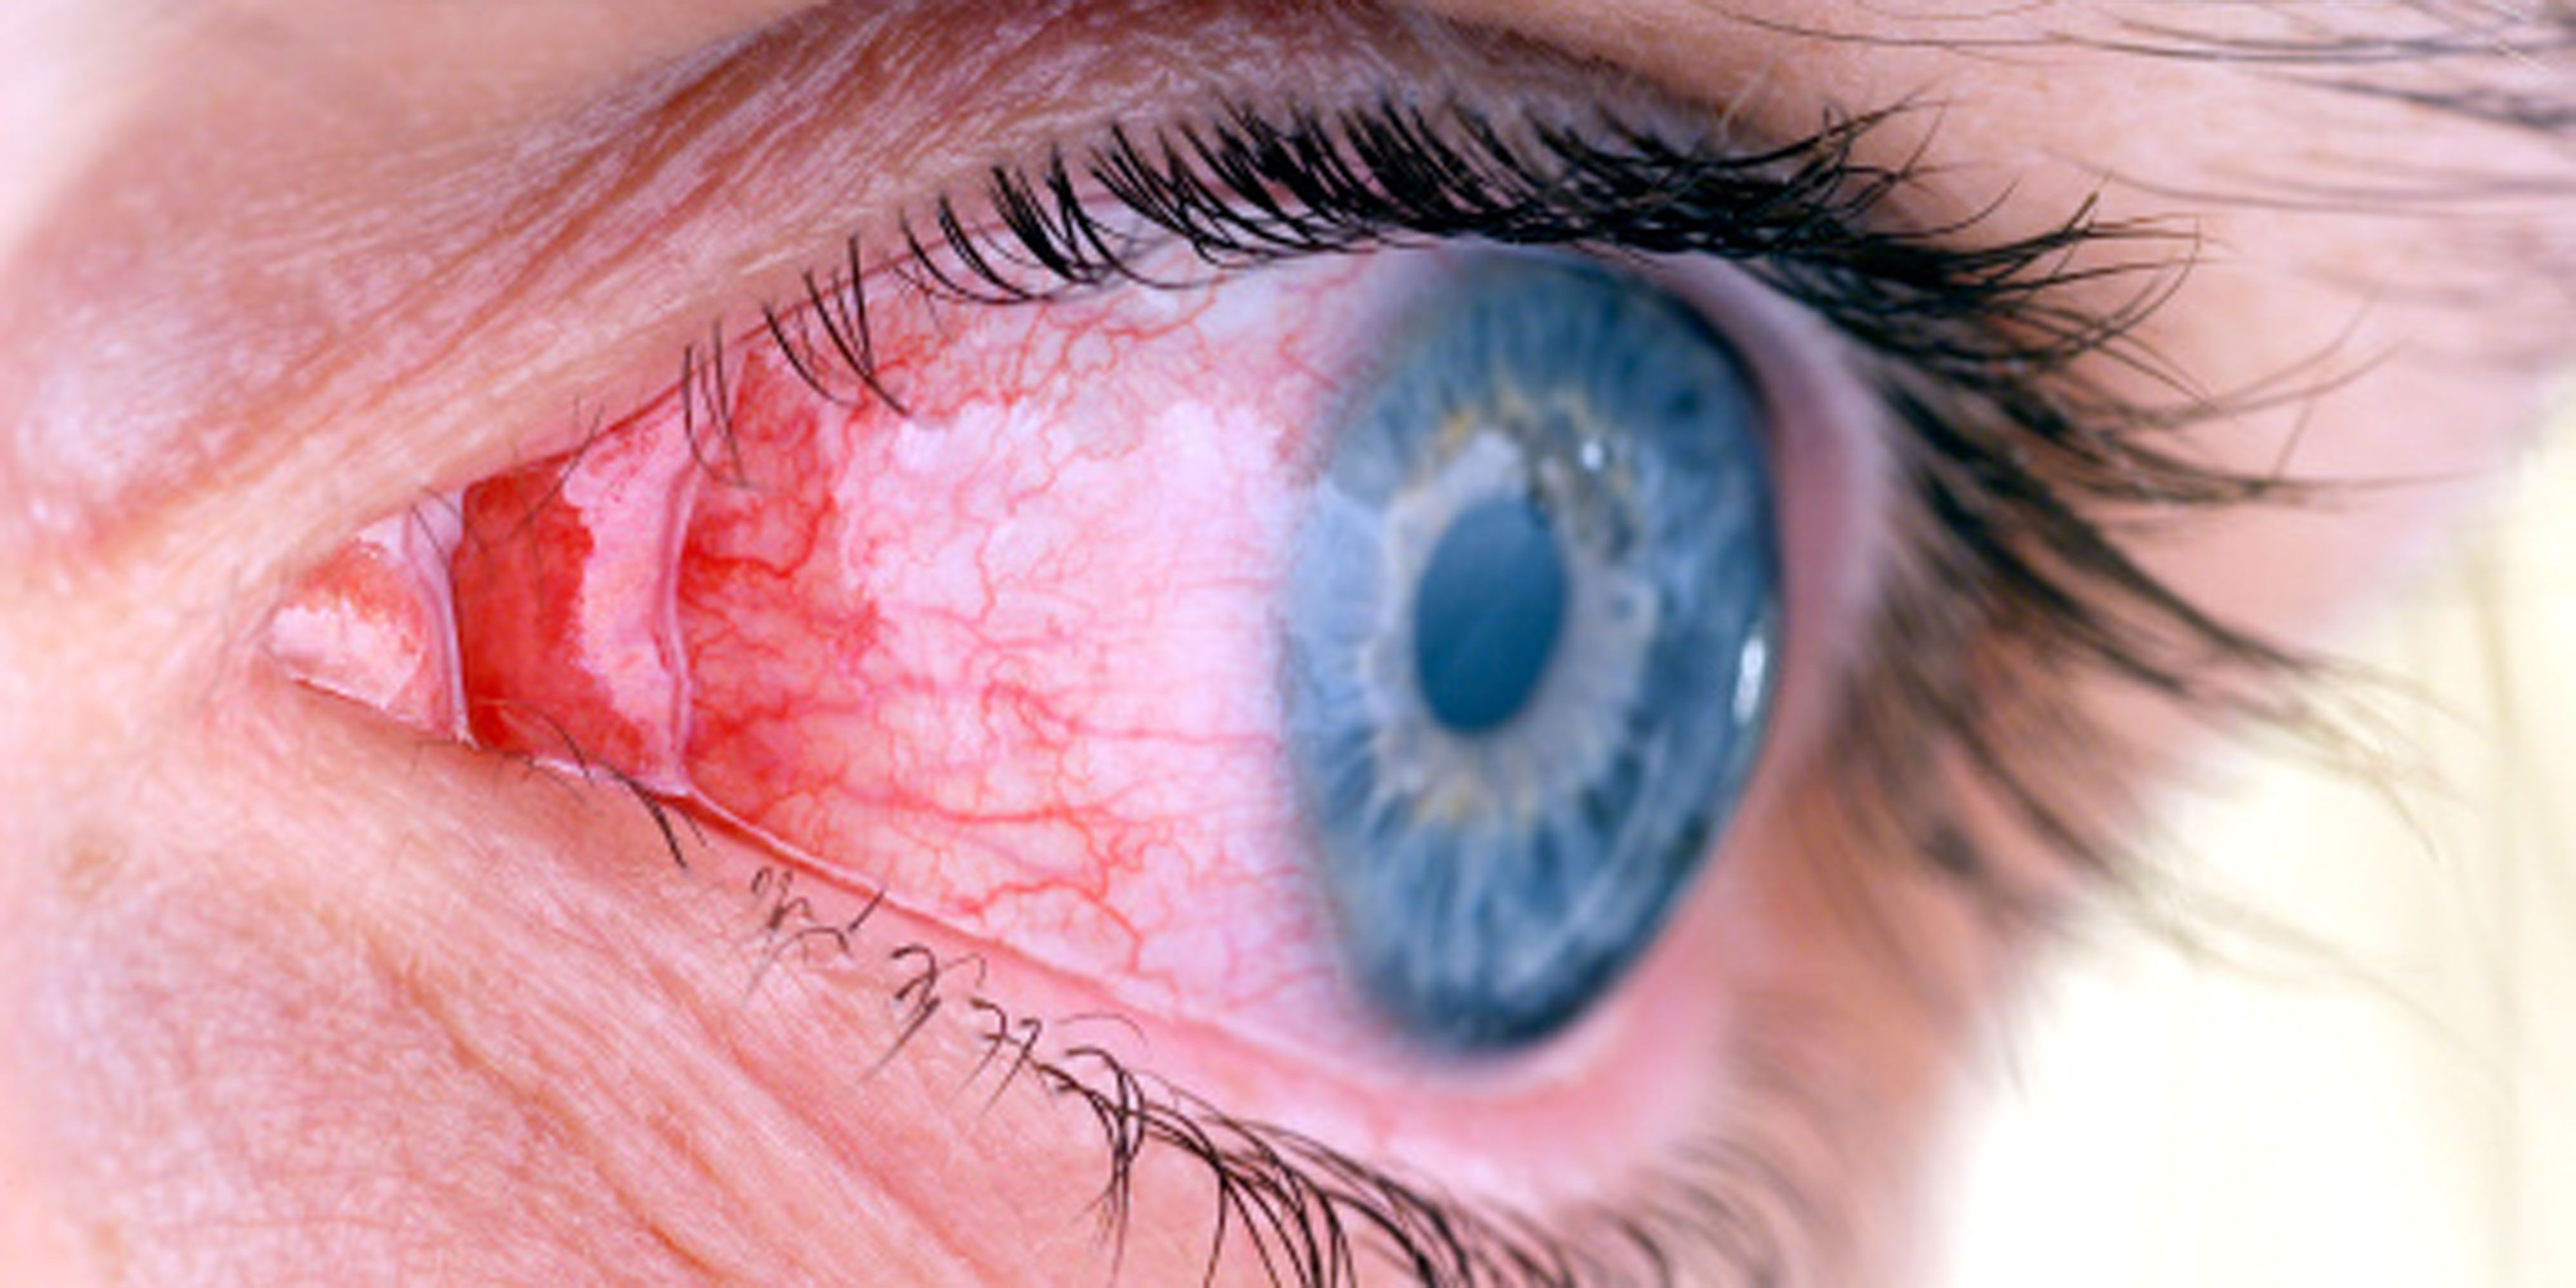 How to treat conjunctivitis without risk to health 74